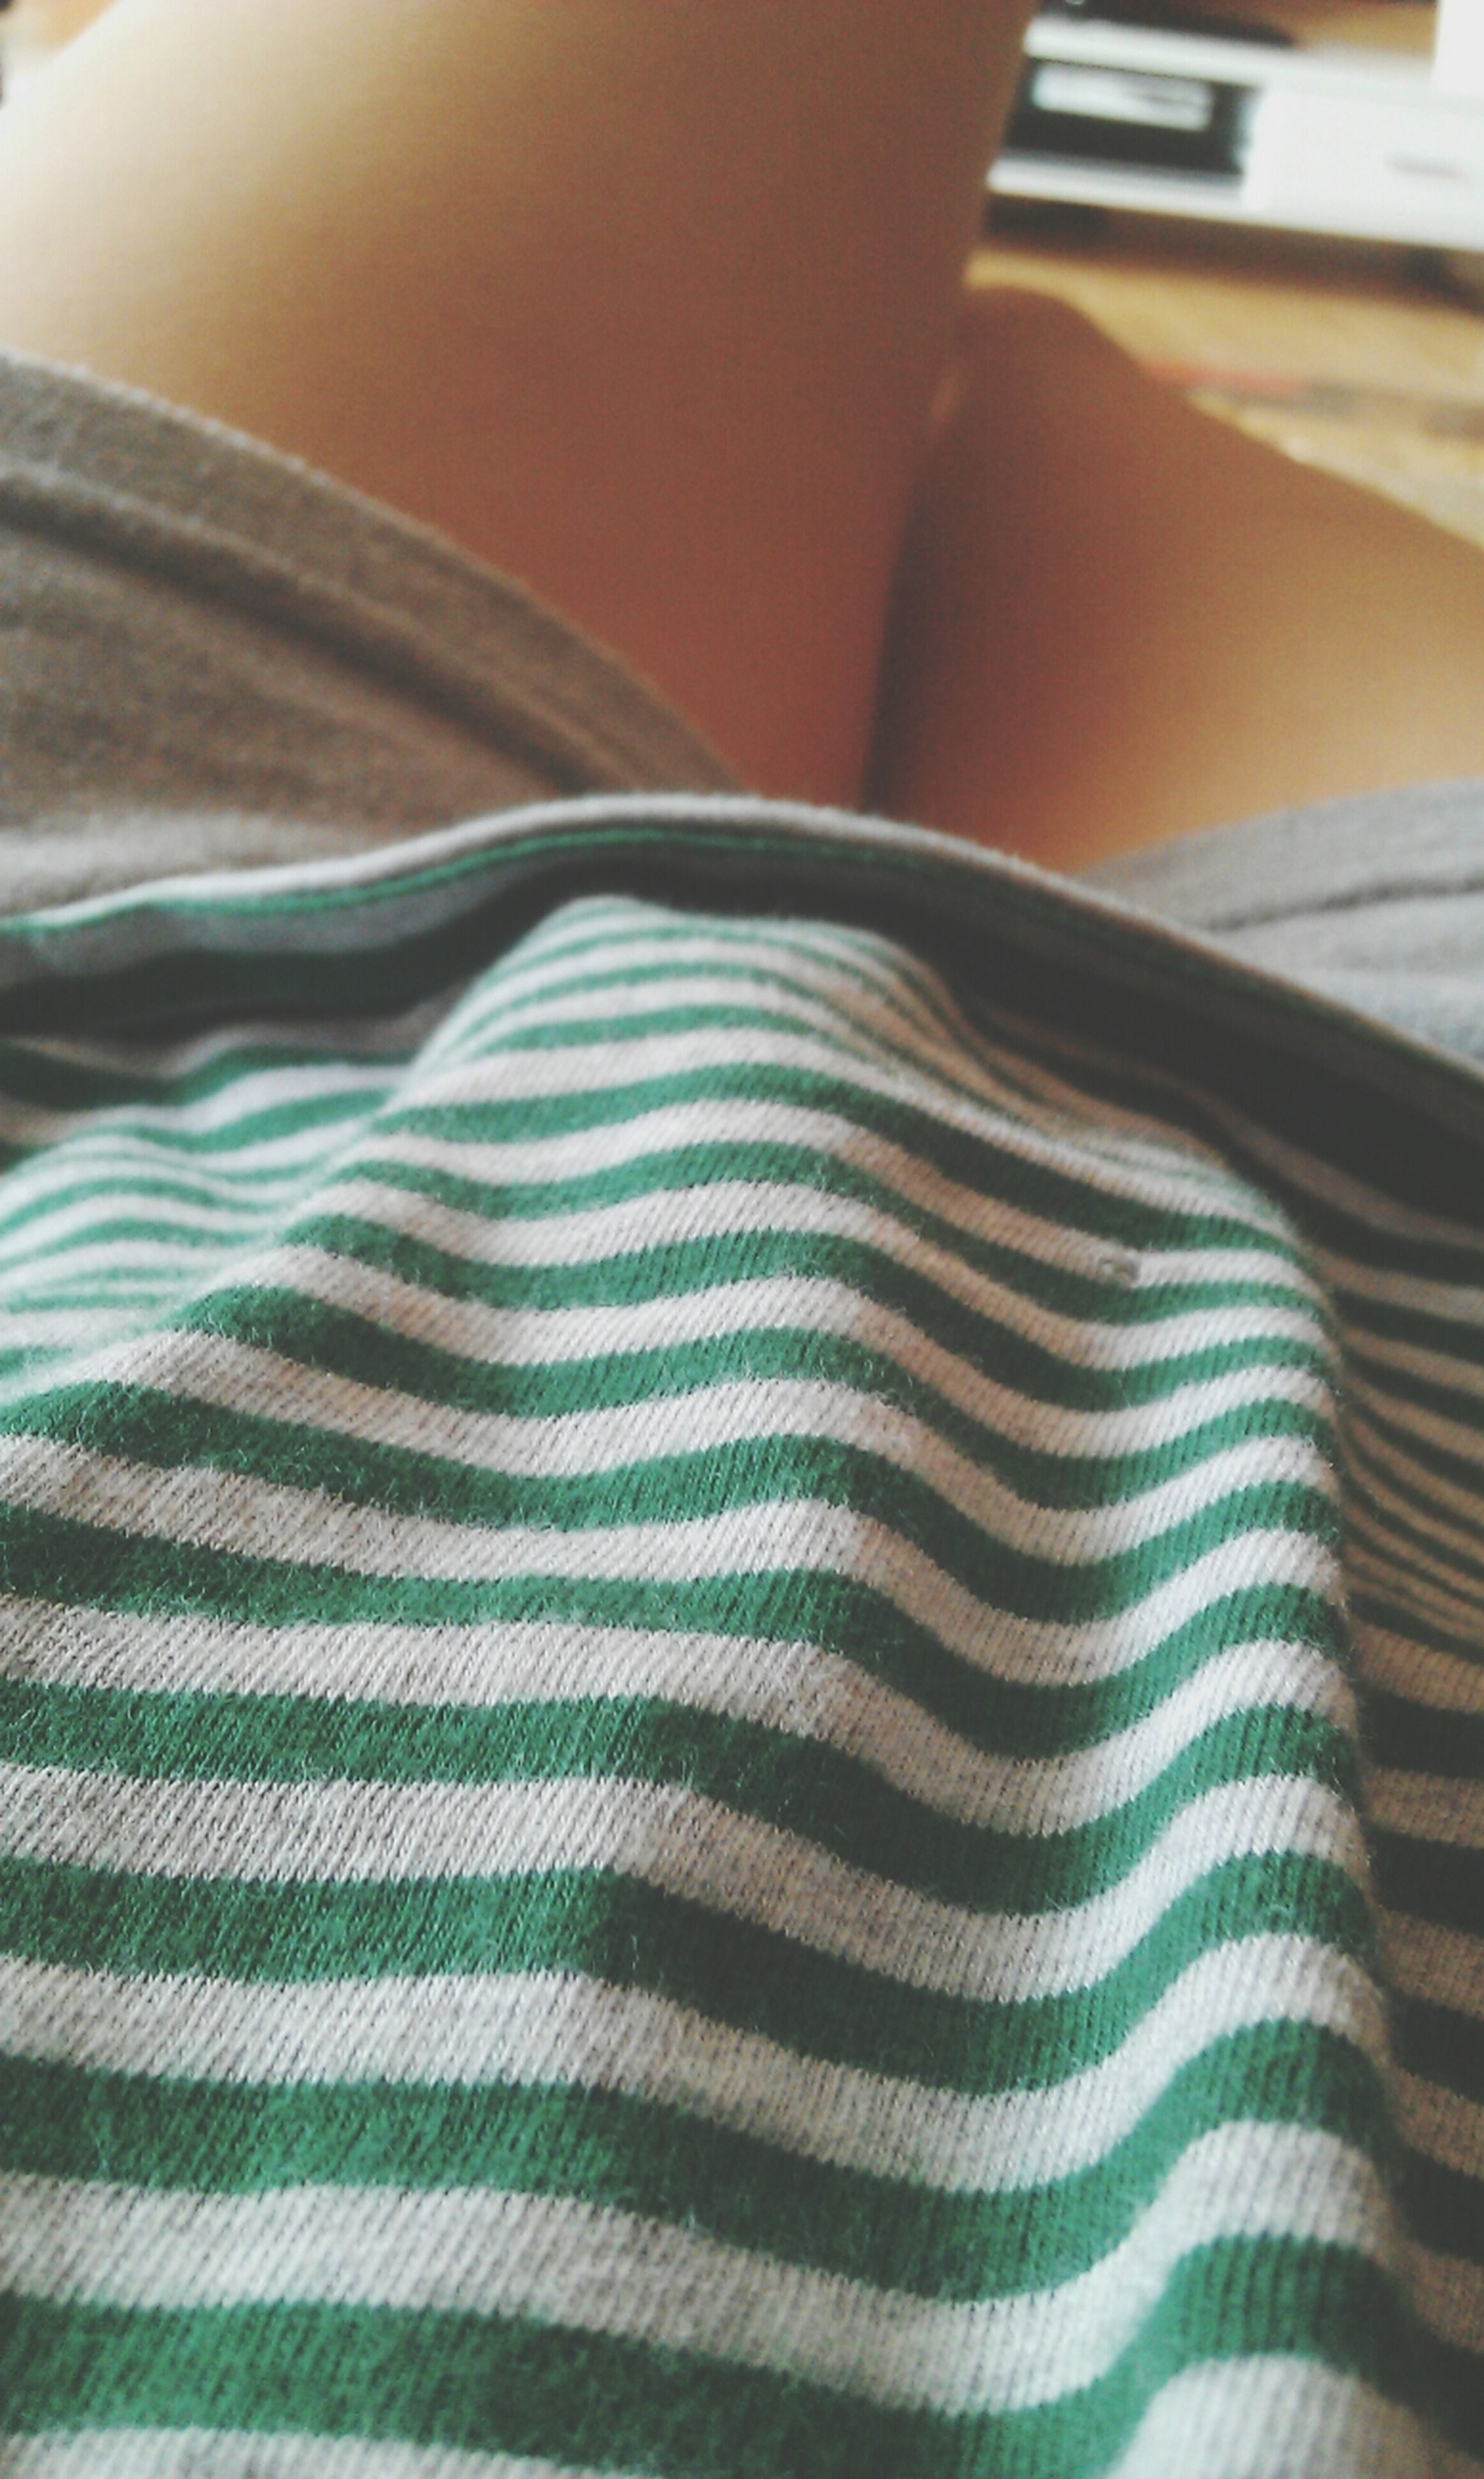 indoors, bed, textile, fabric, close-up, pattern, home interior, relaxation, sheet, one person, bedroom, full frame, part of, striped, high angle view, sofa, pillow, blanket, detail